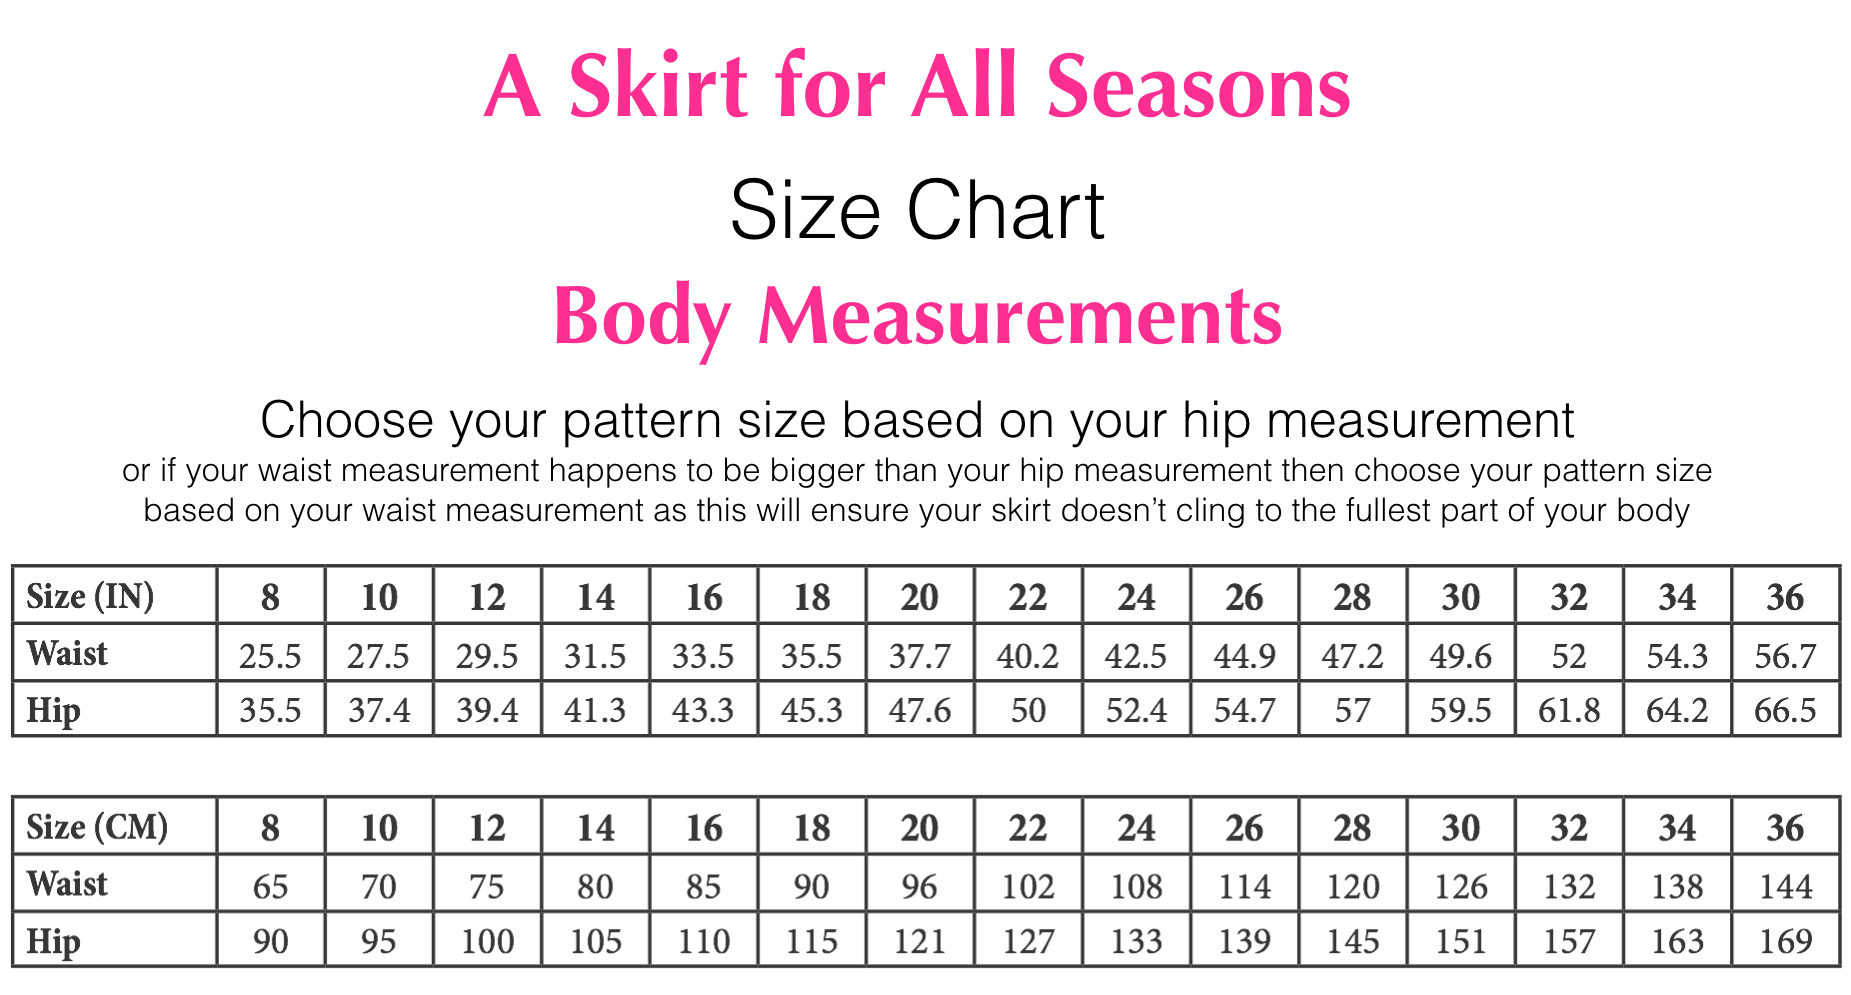 Chris Lucas Designs - A Skirt For All Seasons - Size Chart